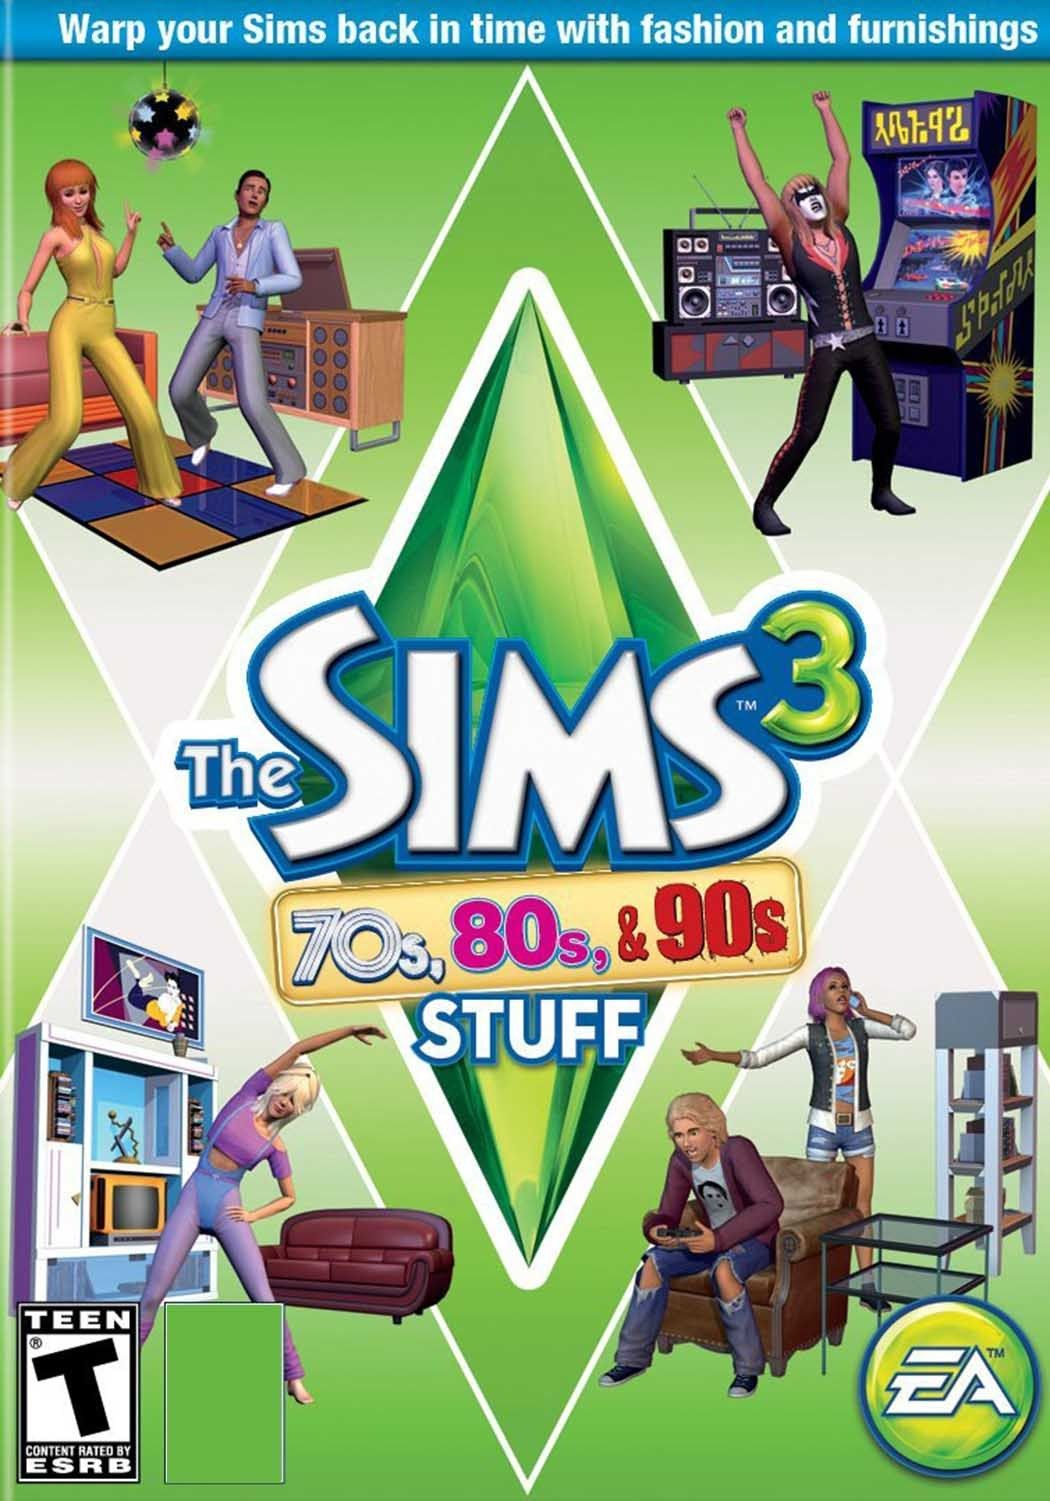 THE SIMS 3 70s, 80s, & 90s STUFF EXPANSION PACK